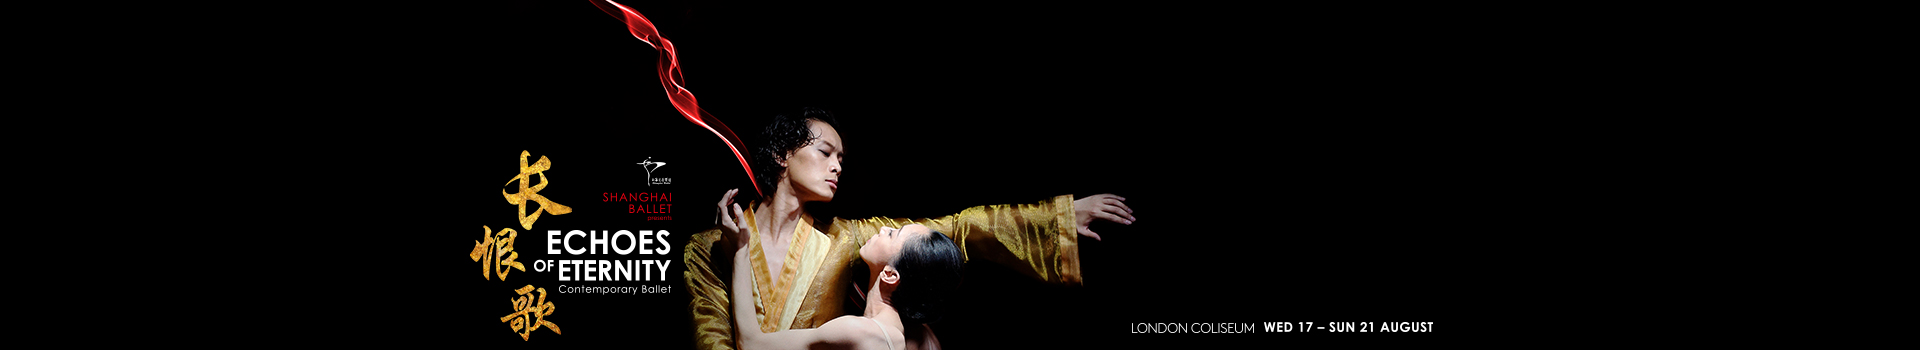 Shanghai Ballet Company: Echoes of Eternity banner image